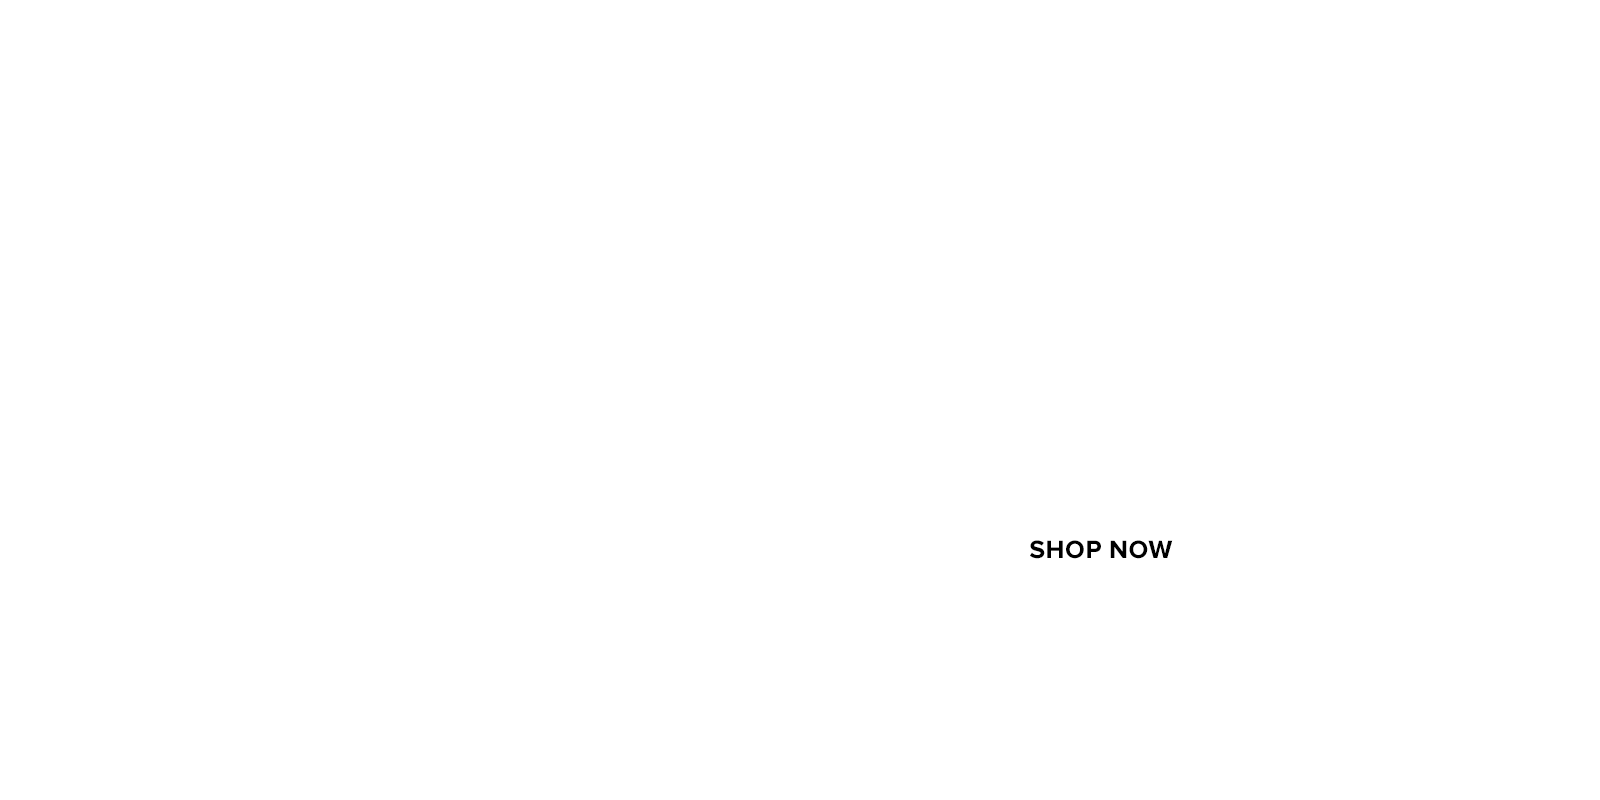 Shop the Gaiam x Jessica Biel Spring Apparel Collection